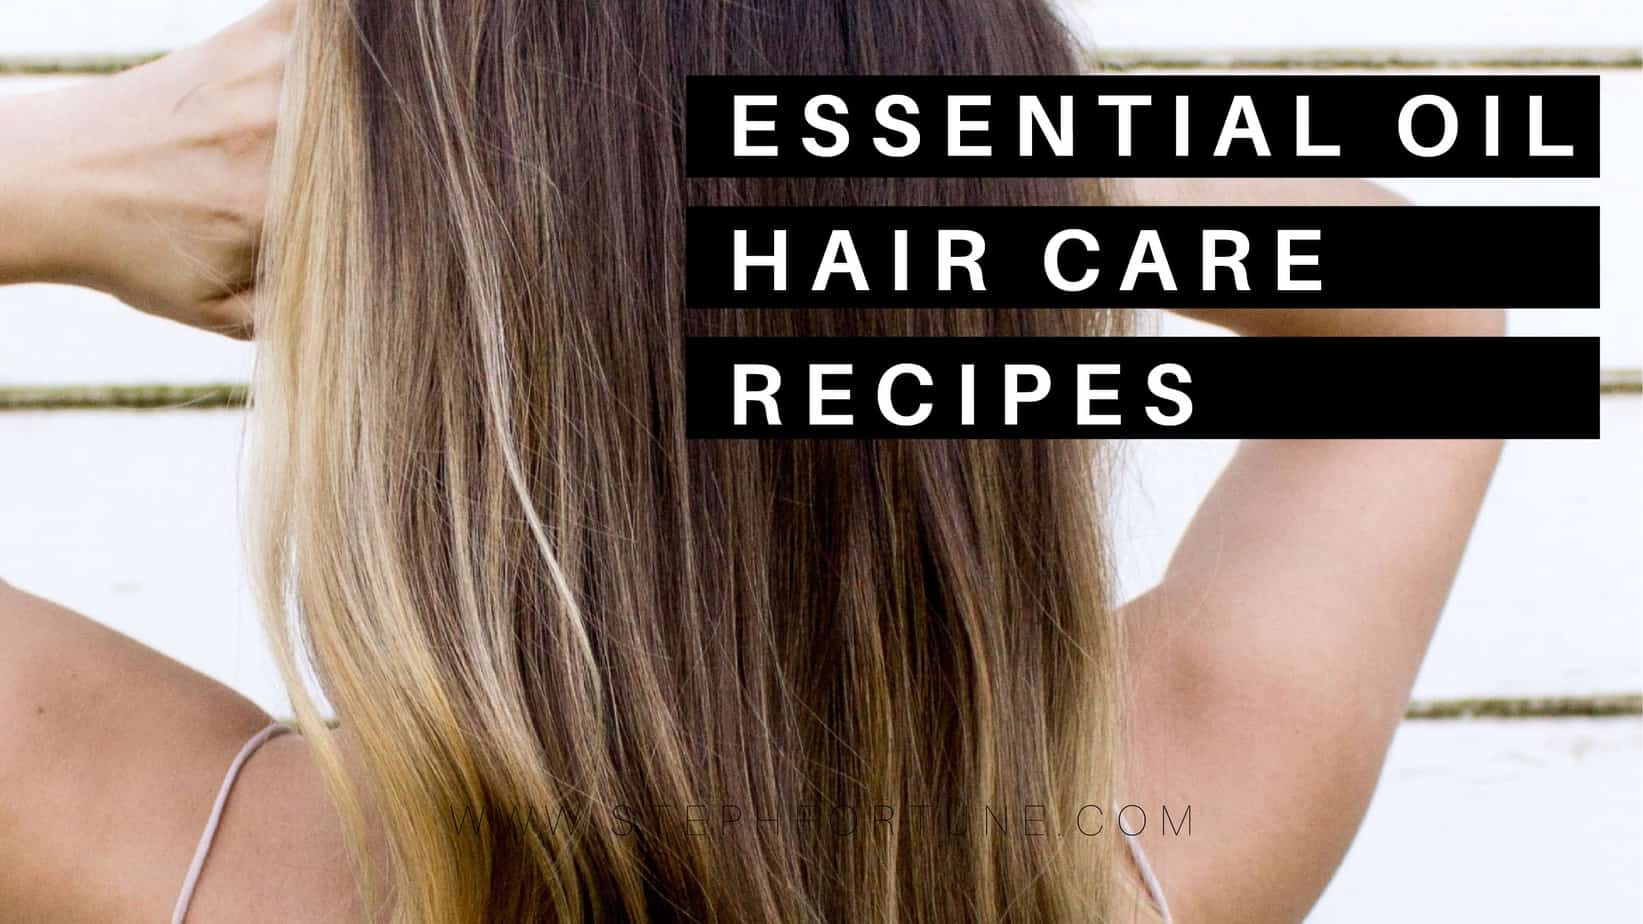 11 Of The Best Diy Hair Care Recipes With Essential Oils